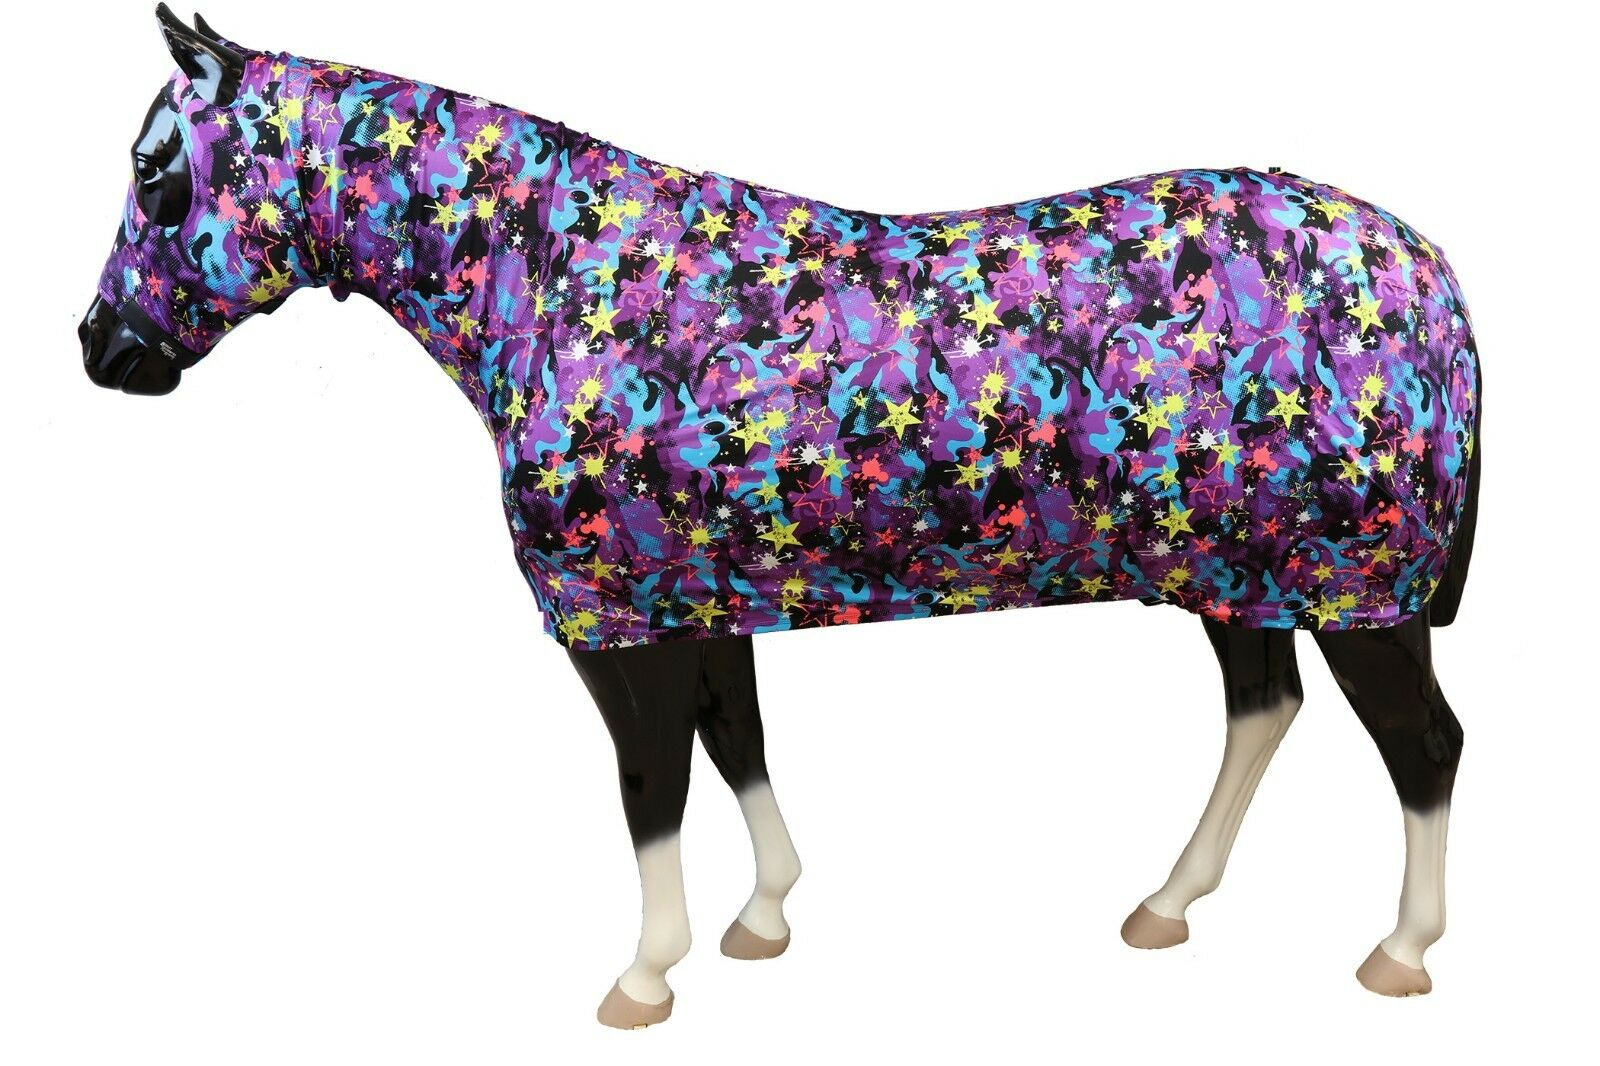 Sleazy Sleepwear for Horses Full Bodies  Lots of Patterns  Size M & L